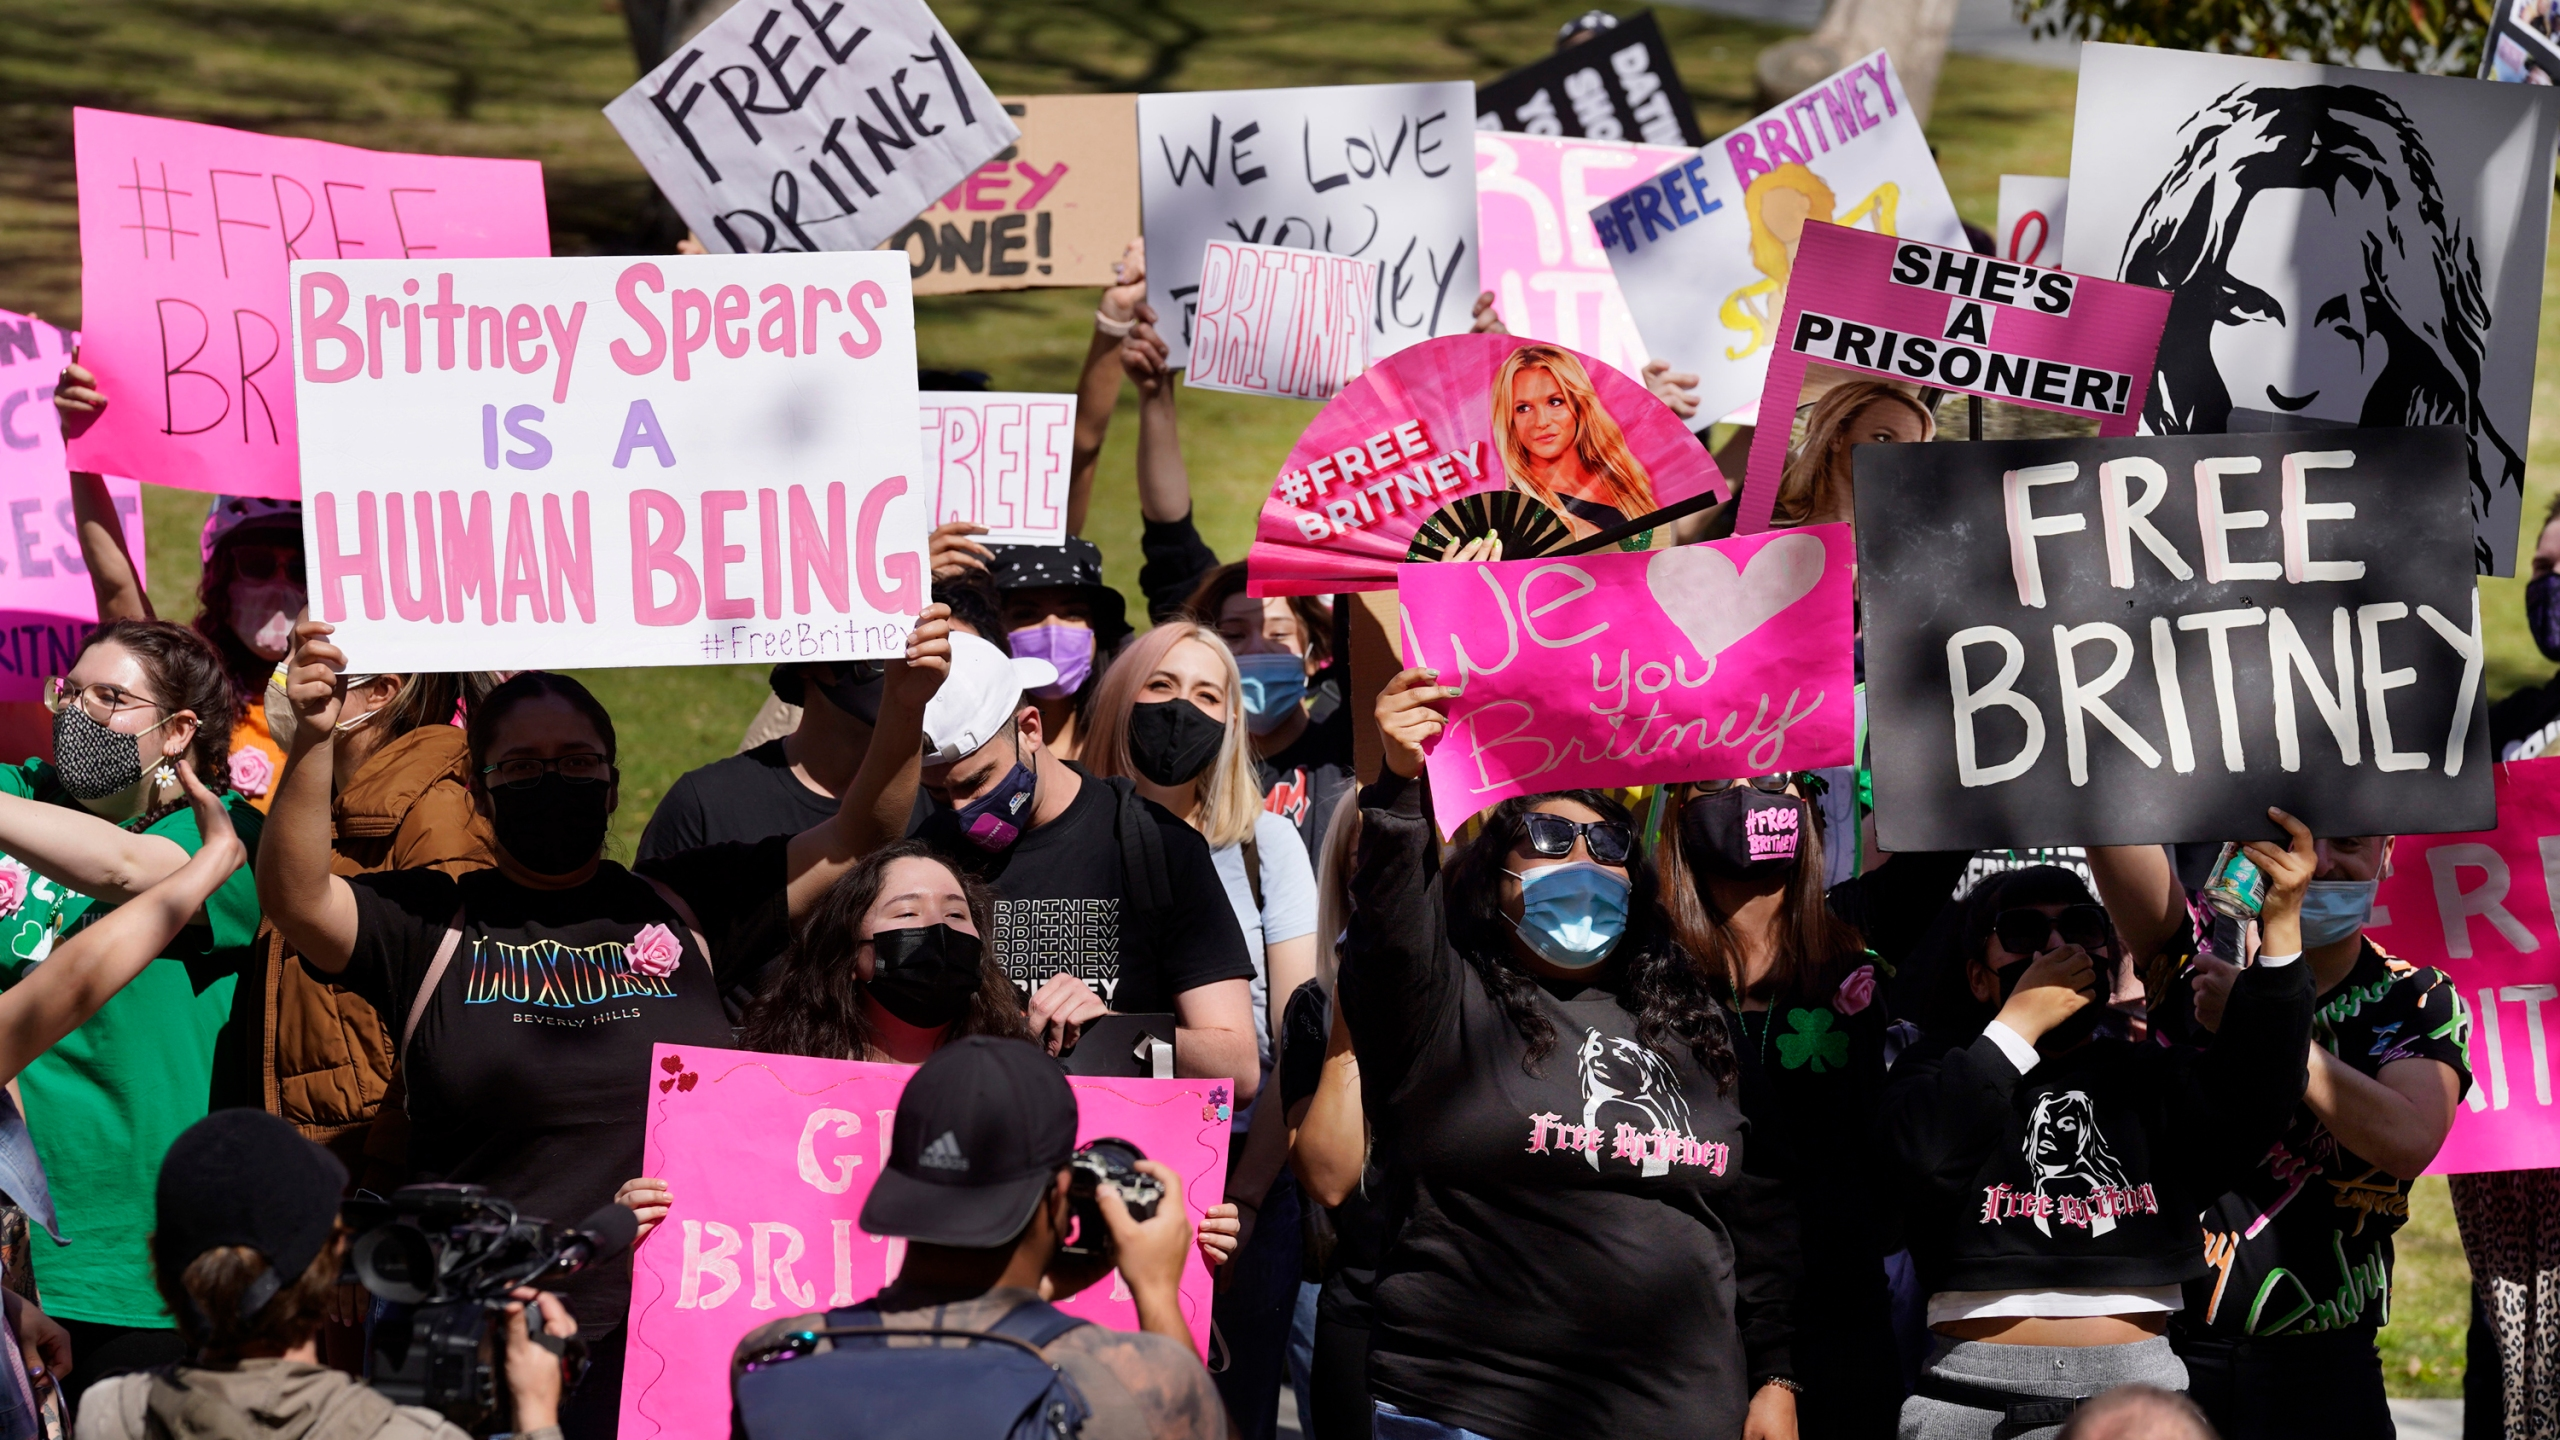 In this March 17, 2021 file photo Britney Spears fans hold signs outside a court hearing concerning the pop singer's conservatorship at the Stanley Mosk Courthouse, in Los Angeles. (Chris Pizzello/Associated Press)